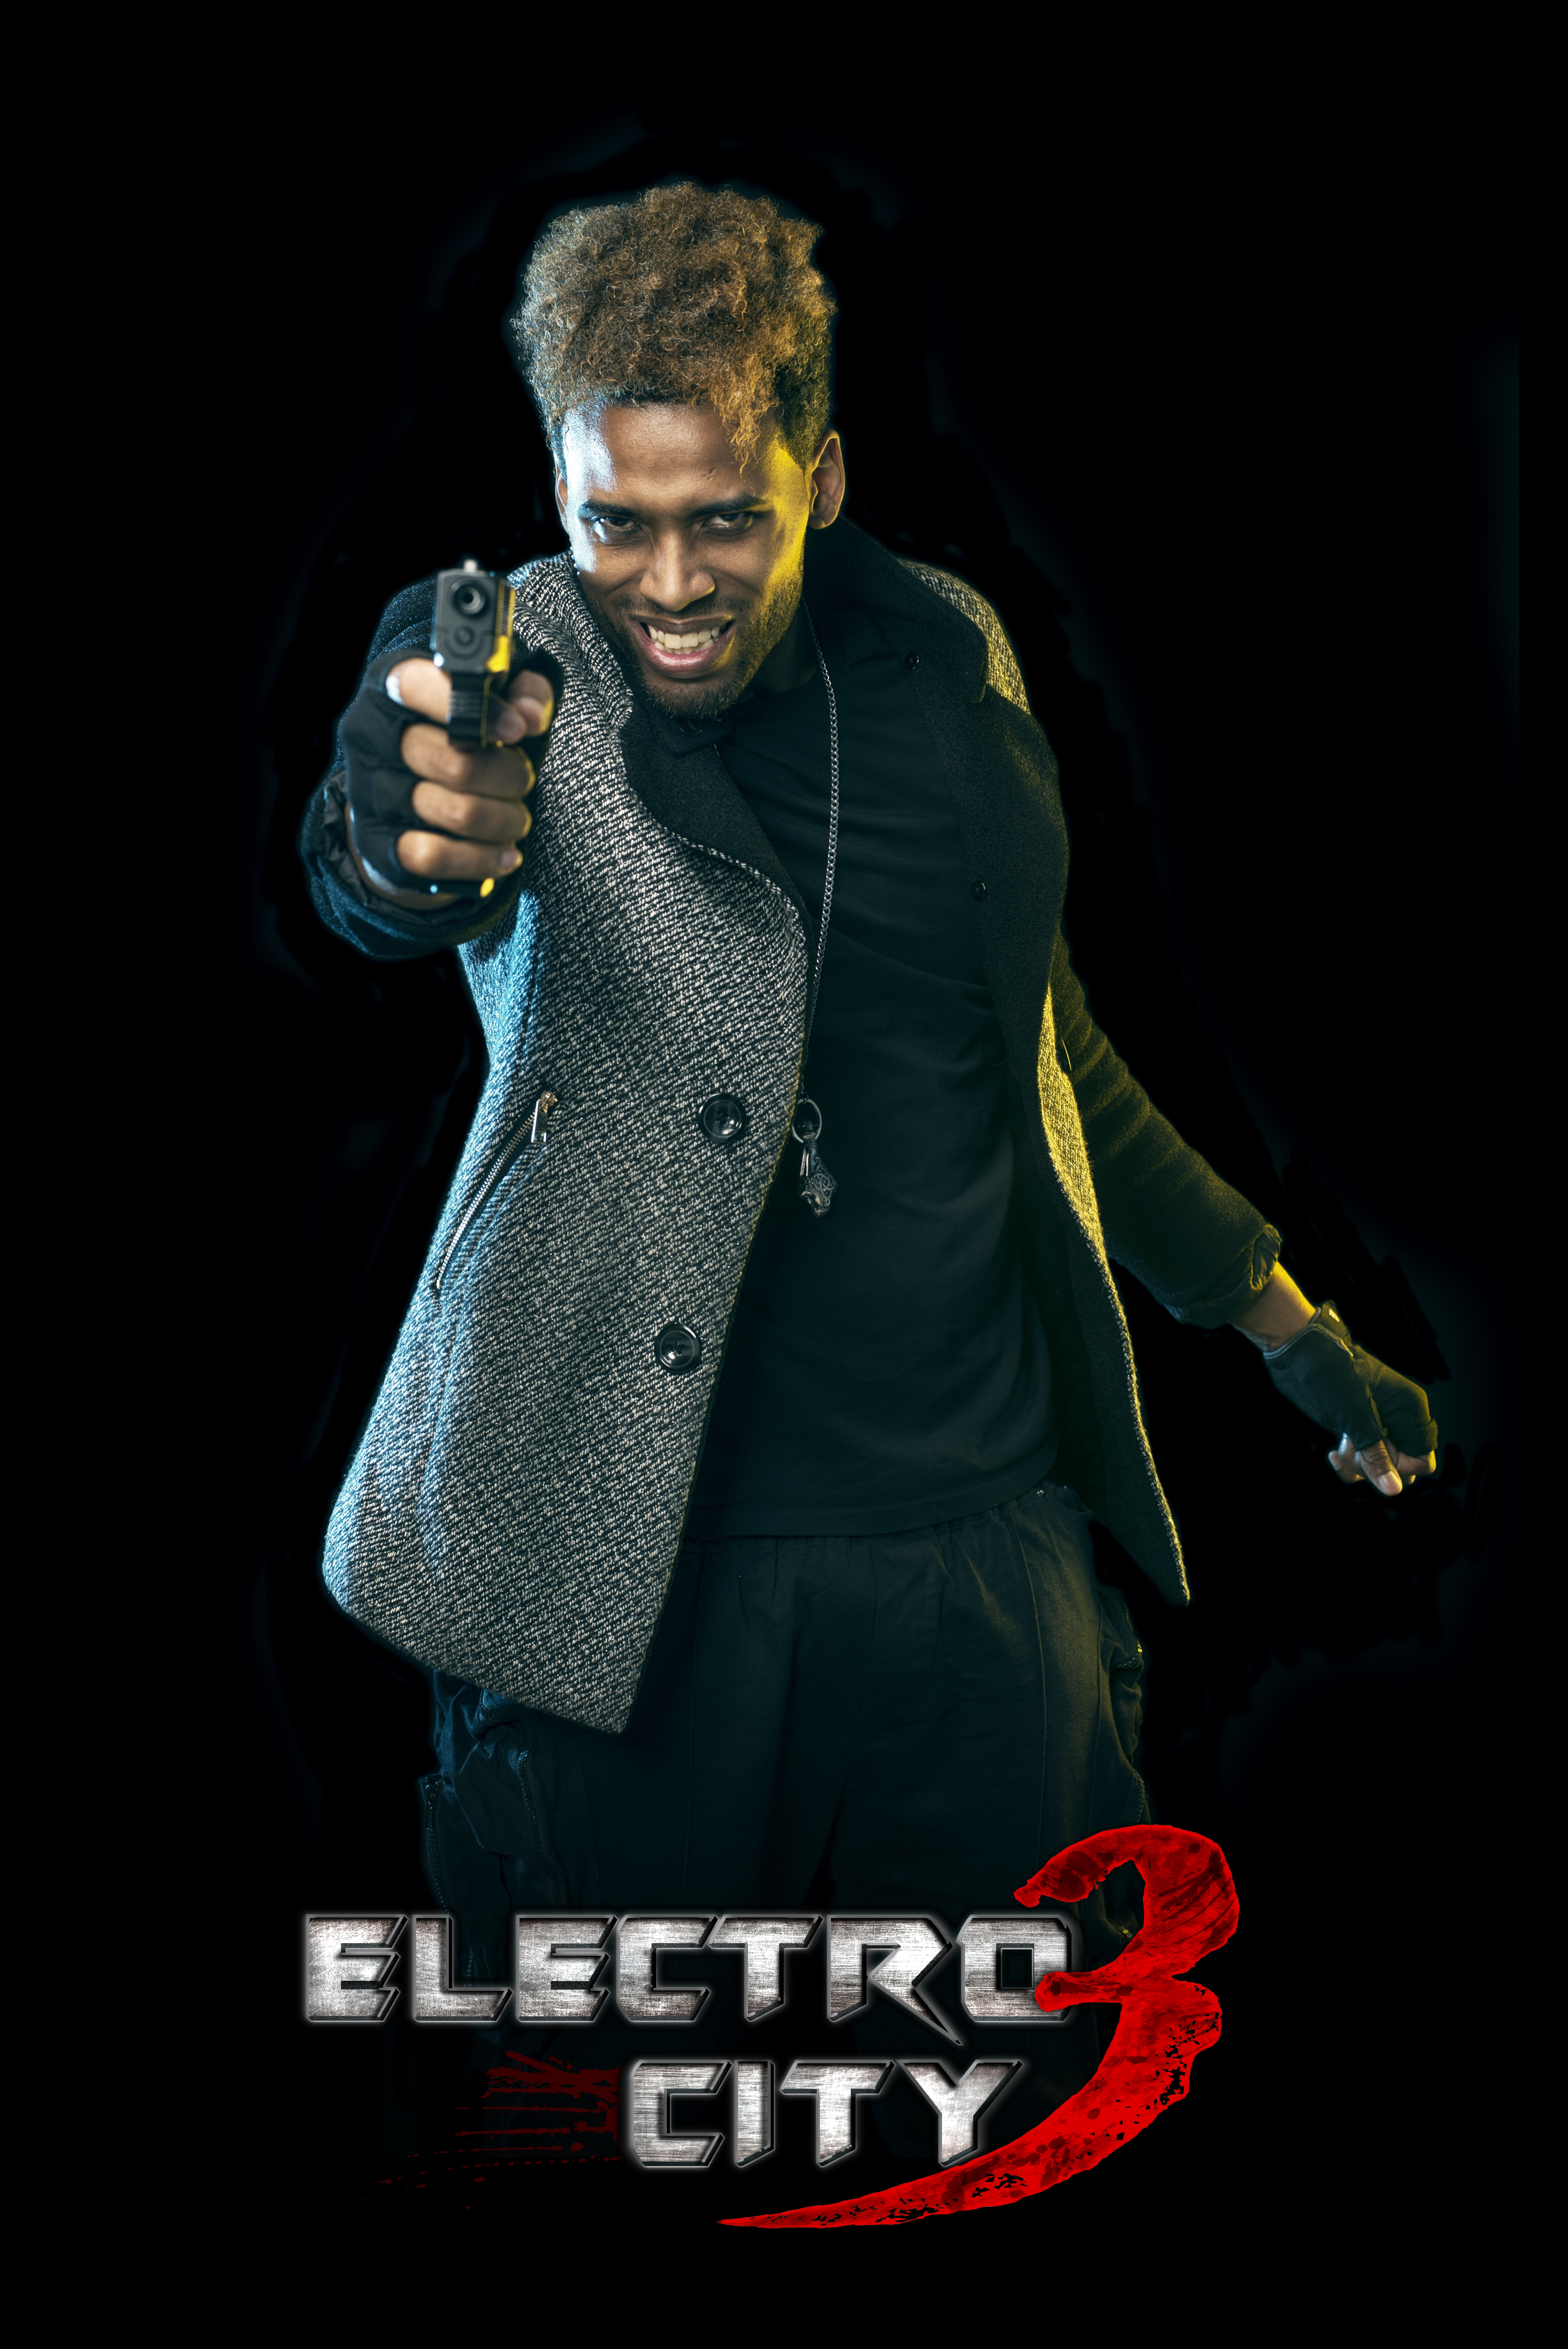 Electro City 3 - Kelvin Taylor as Dynamite